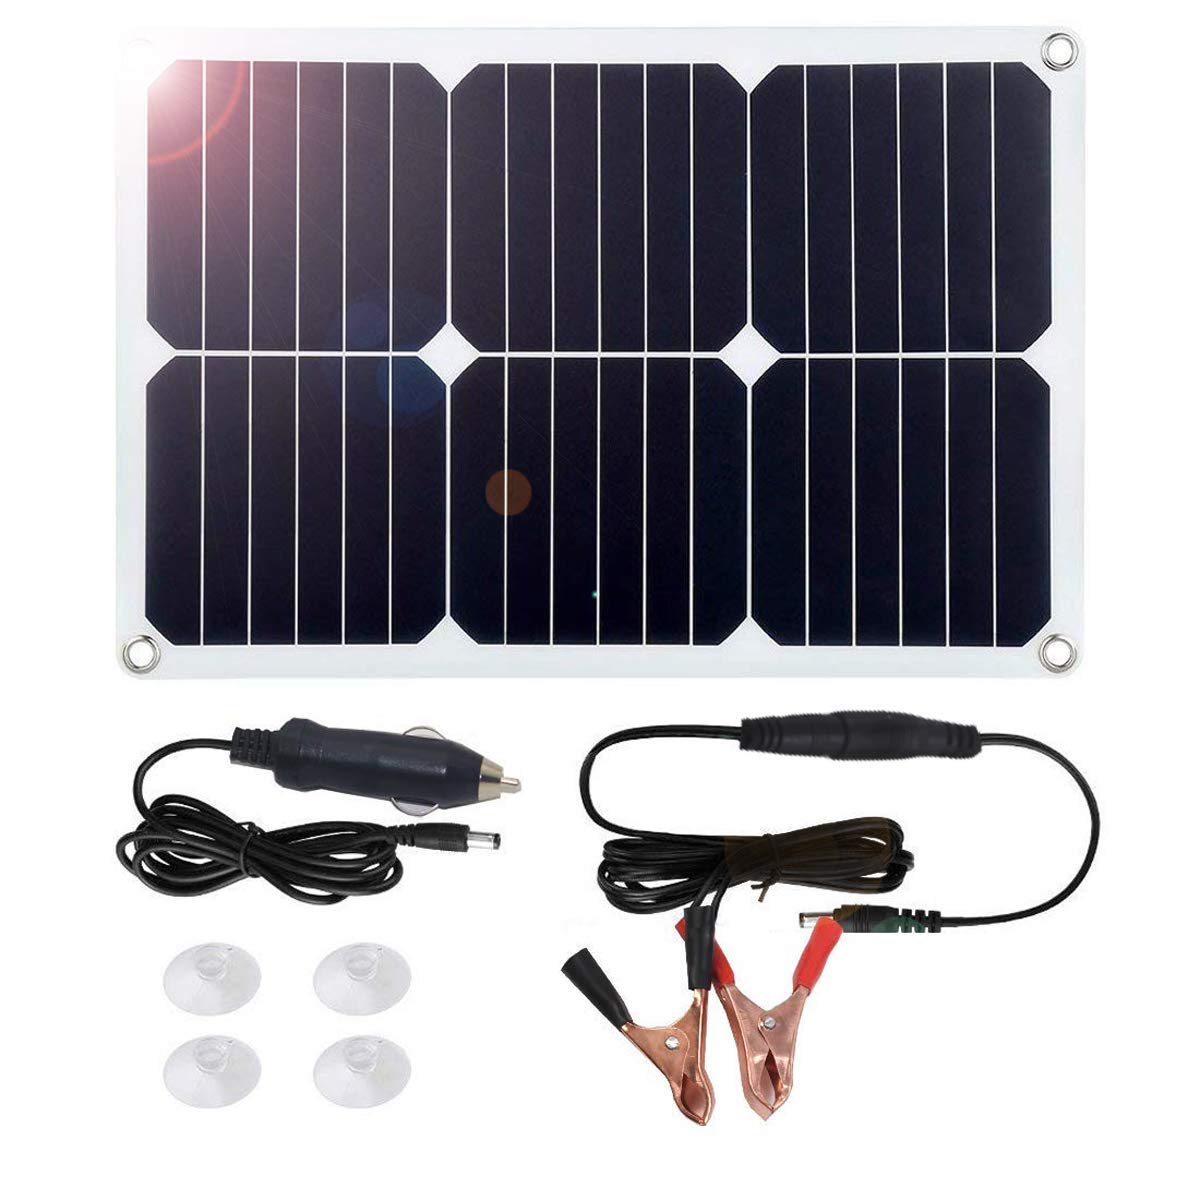 MEGSUN 18V 12V 18W Solar Car Power Battery Charger, Portable Solar Panel Trickle Charger with Cigarette Lighter Plug, Suction Cups, Maintainer for Automobile Motorcycle Boat by M MEGSUN